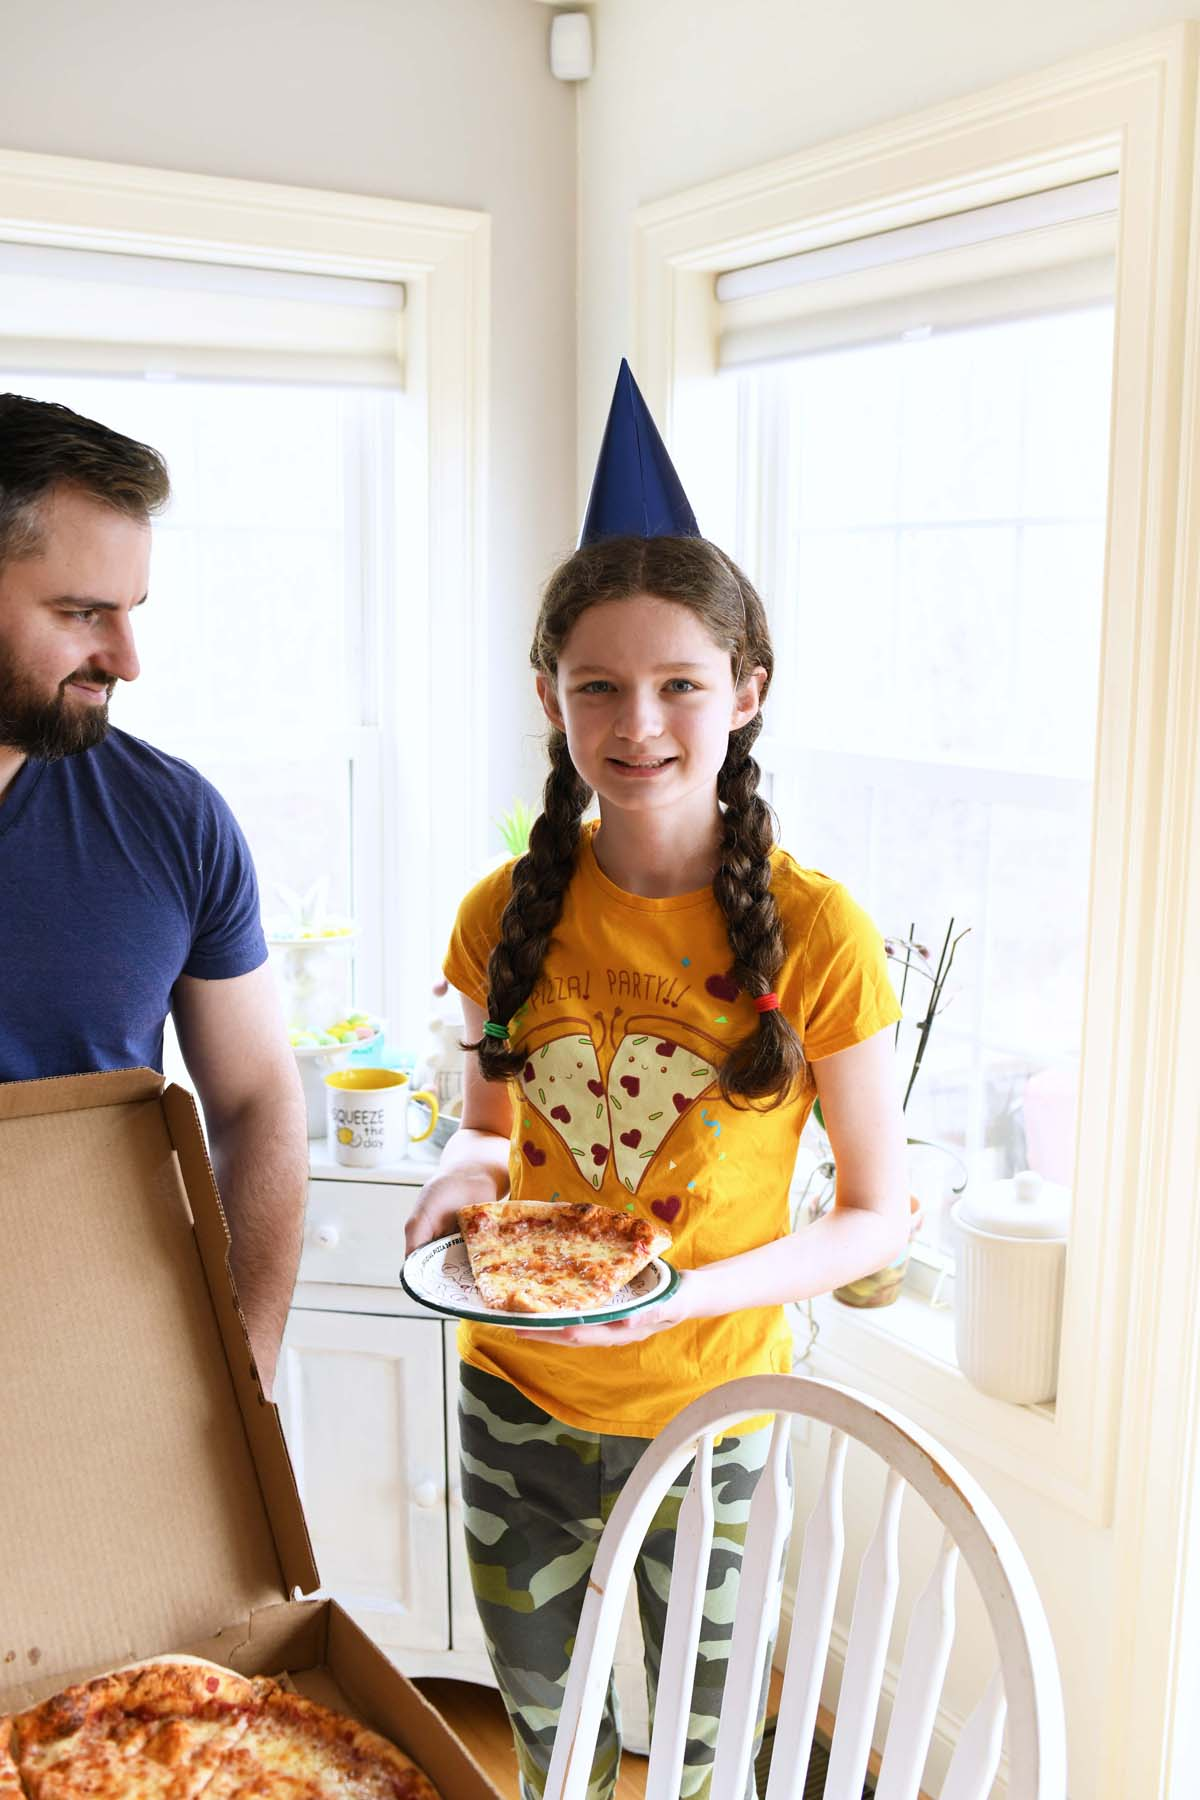 Girl with blue party hate on holding pizza with her father.